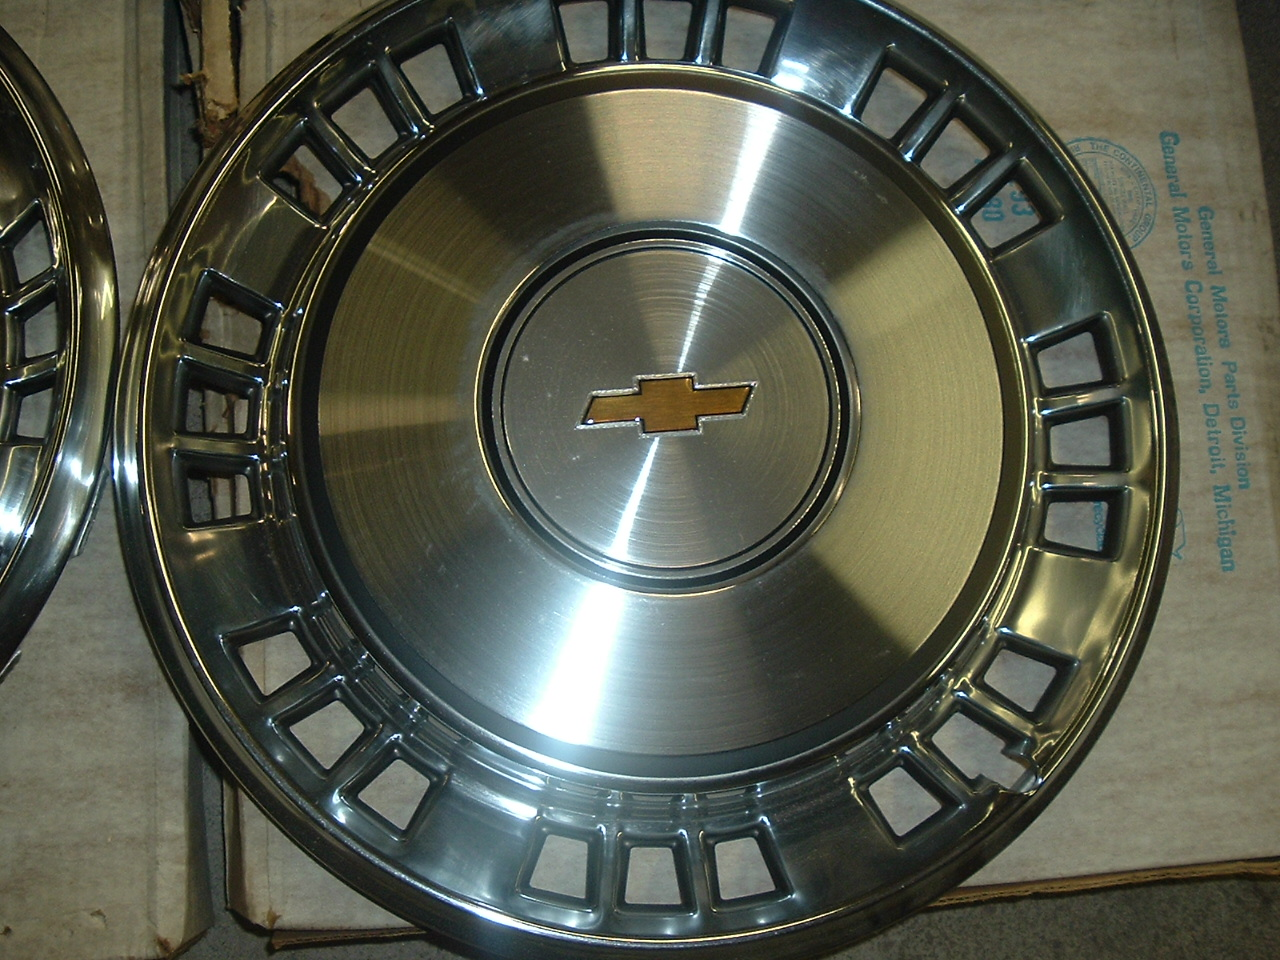 View Product1980 1981 Chevrolet Impala hubcaps nos 14012576 (a 14012576)